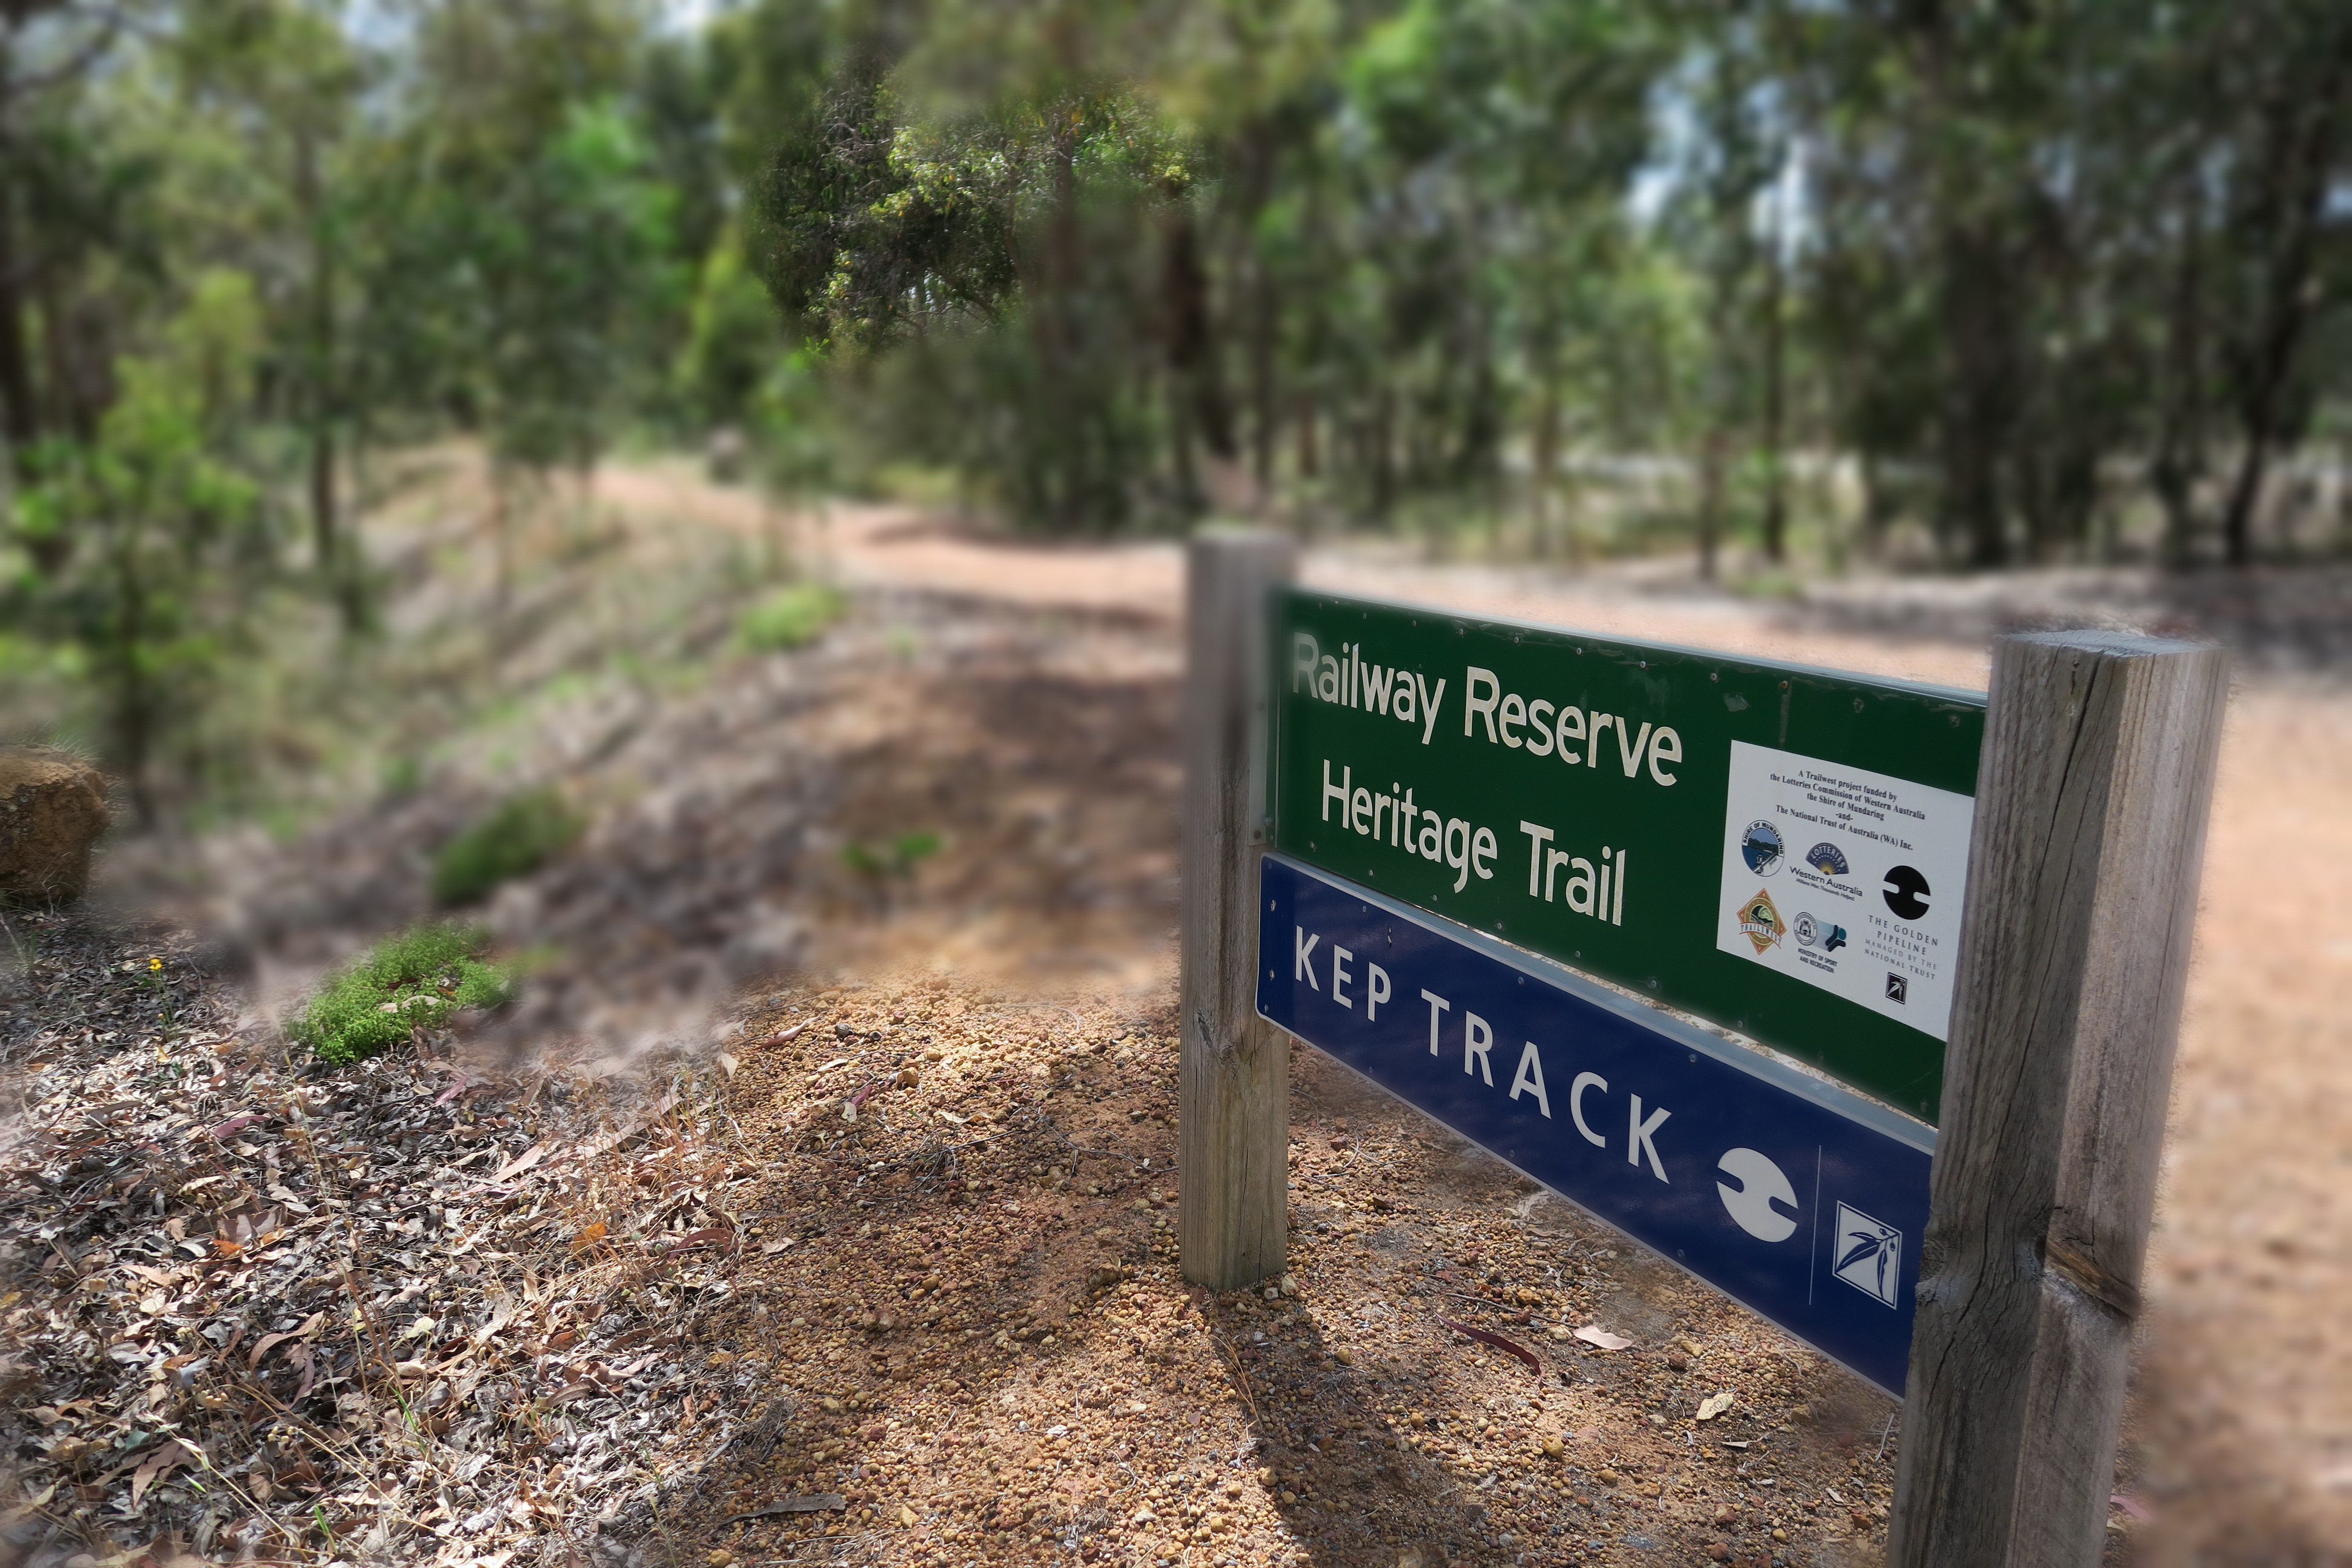 Railway Reserves Heritage Trail and Kep Track